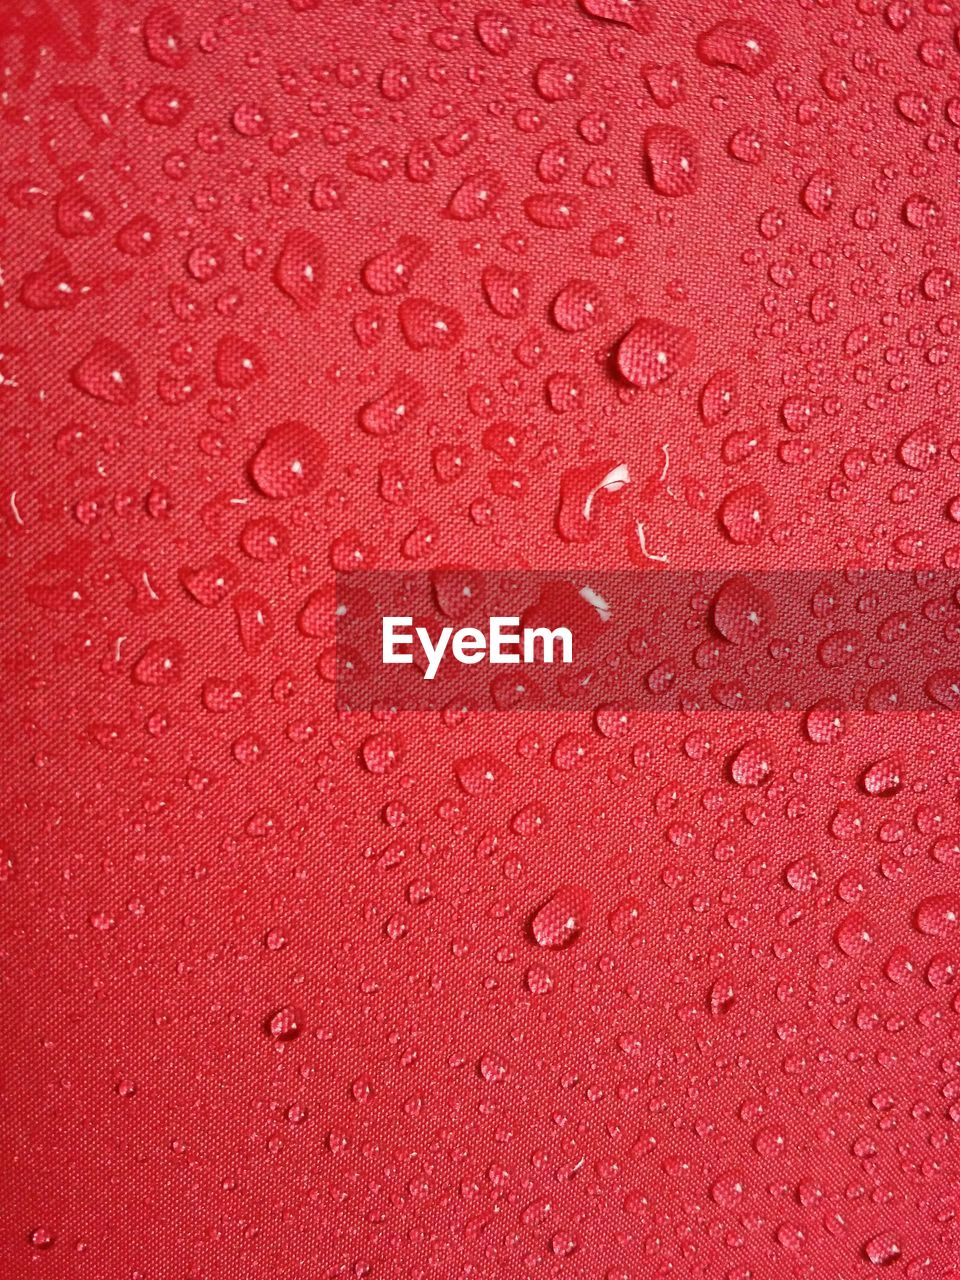 backgrounds, full frame, textured effect, water, bubble, wet, textured, red, drop, indoors, no people, close-up, liquid, nature, purity, fragility, concentric, splashing droplet, futuristic, day